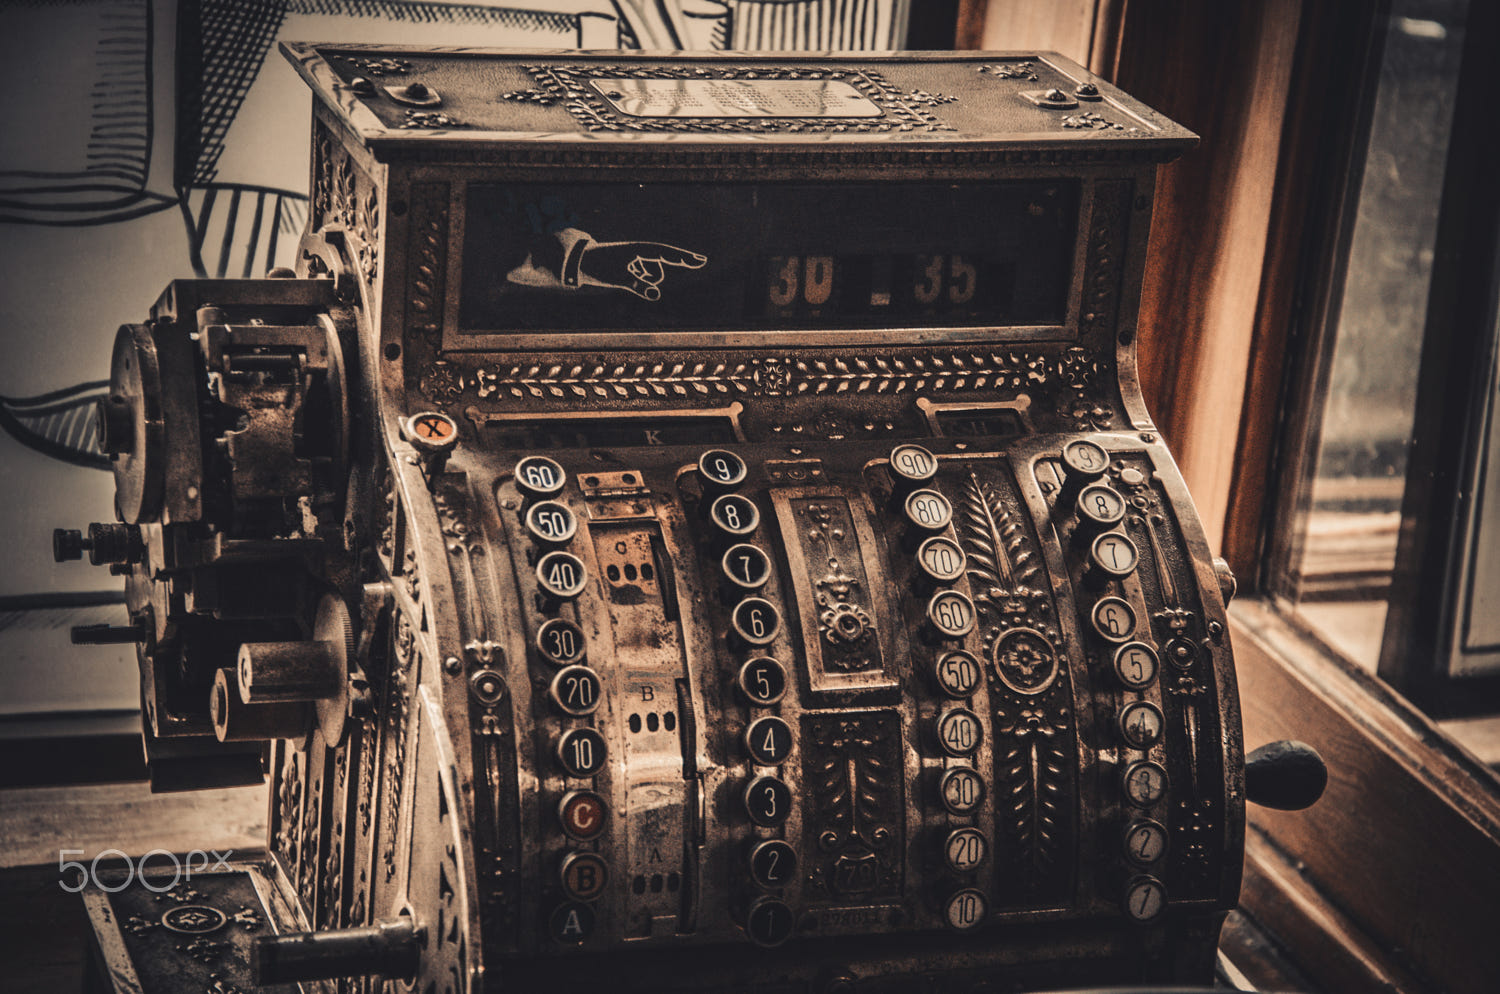 7 vintage photography cash register by nataly nevermind